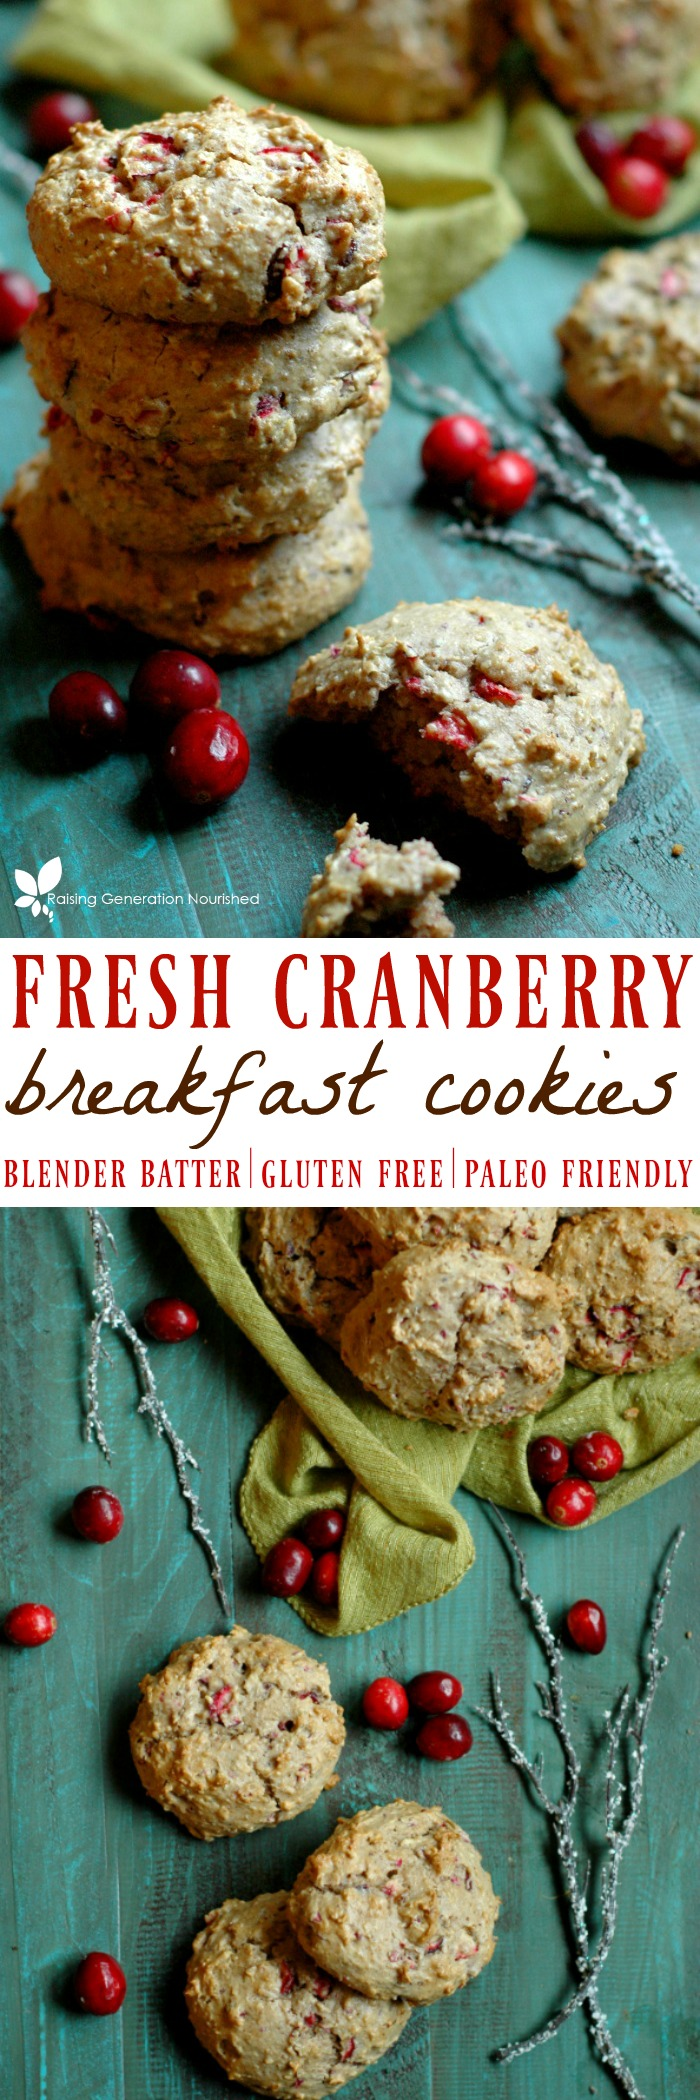 Blender Batter Fresh Cranberry Breakfast Cookies :: Gluten Free, Refined Sugar Free, Paleo Friendly